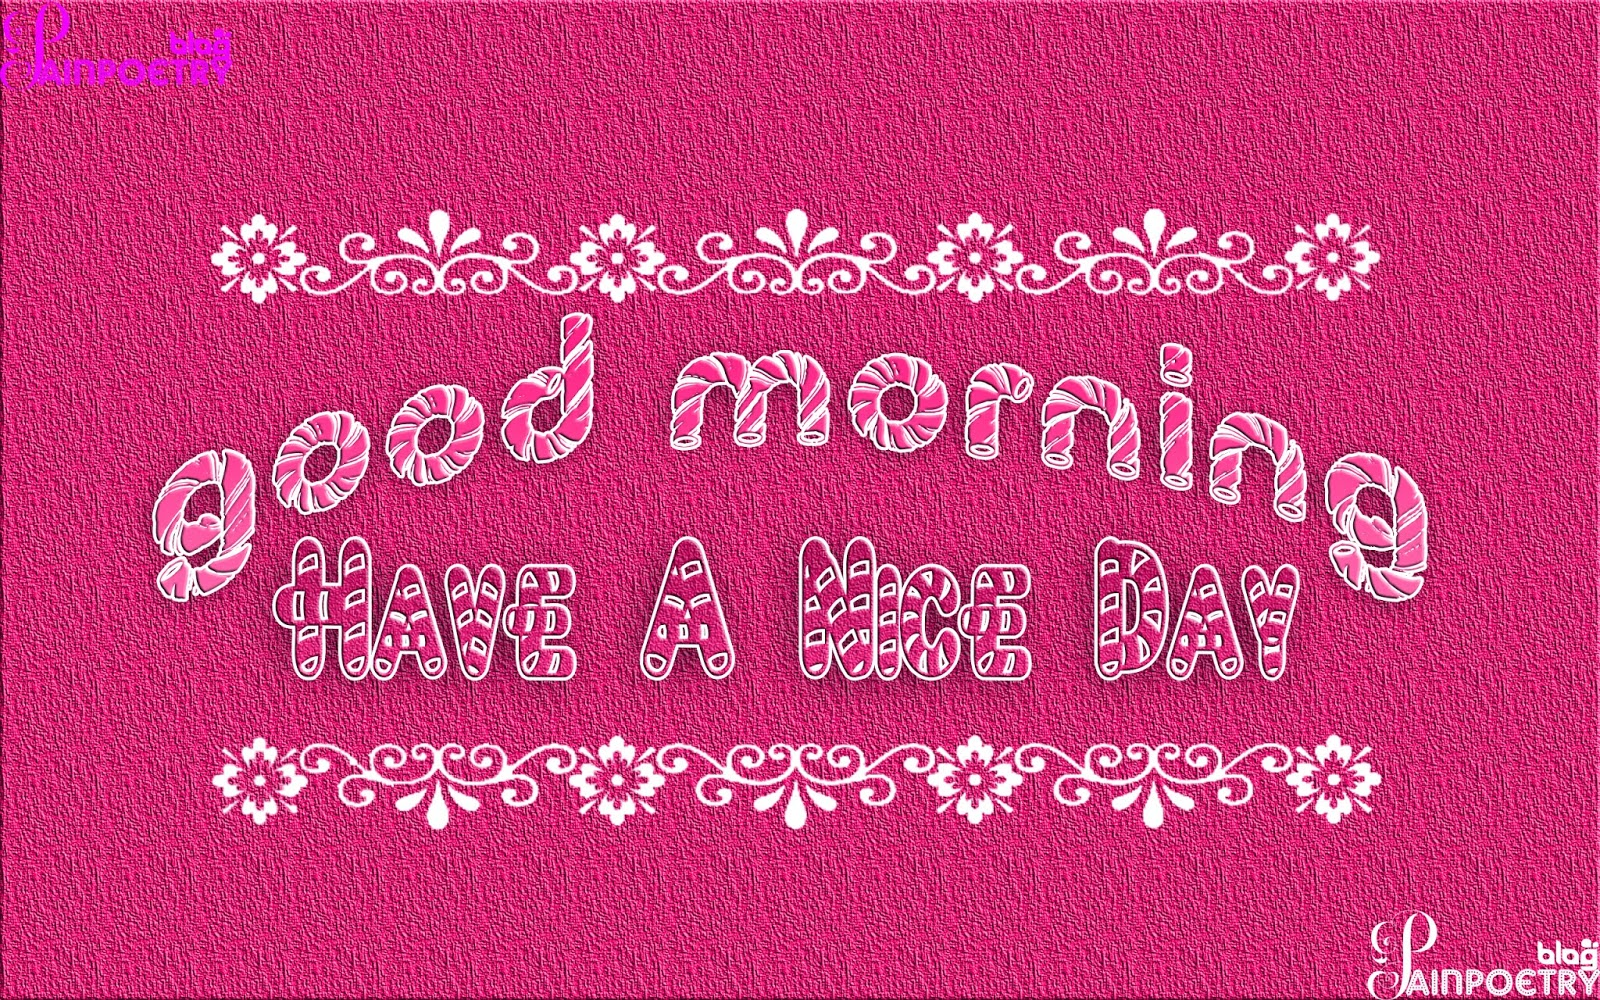 Good-Morning-Have-A-Nice-Day-Wishes-Wallpaper-Photo-Image-HD